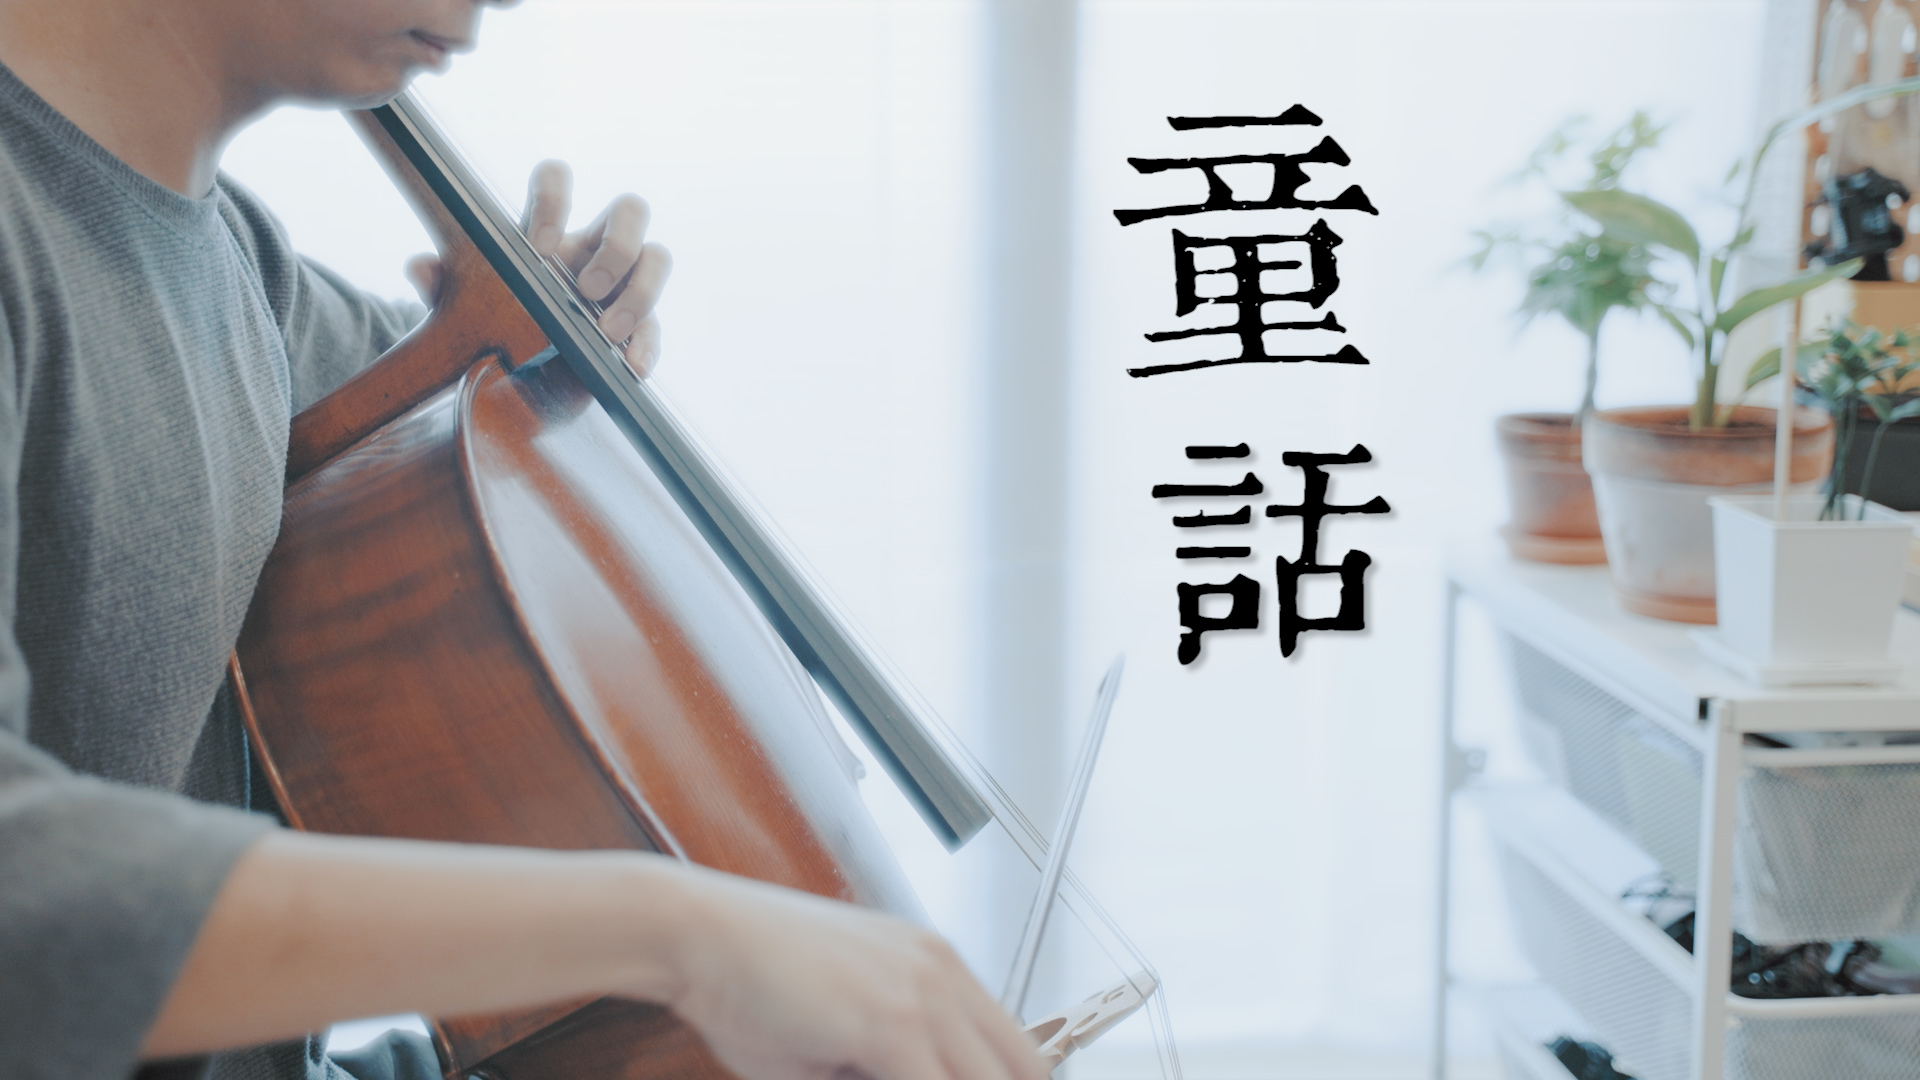 Fairy Tale《童話》 by Michael Wong 光良, 大提琴演奏 Cello Cover 『cover by YoYo Cello』